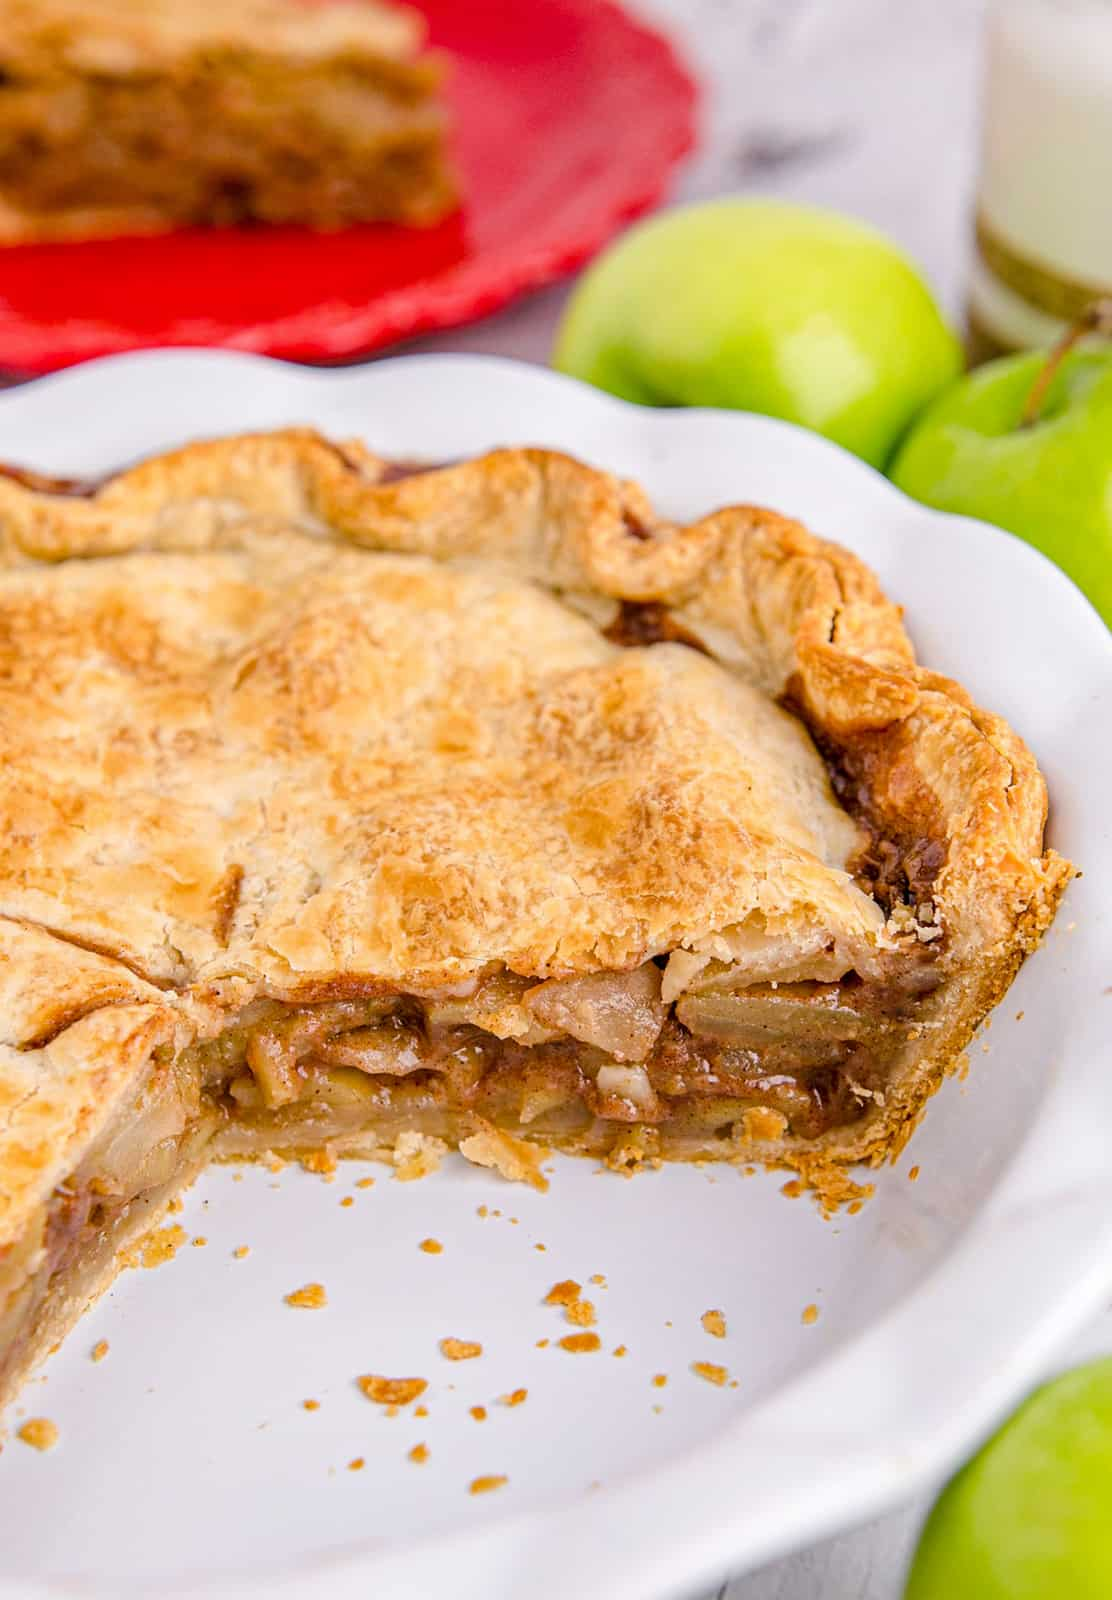 Slices of Apple Pie cut out of pie plate showing inside pie.